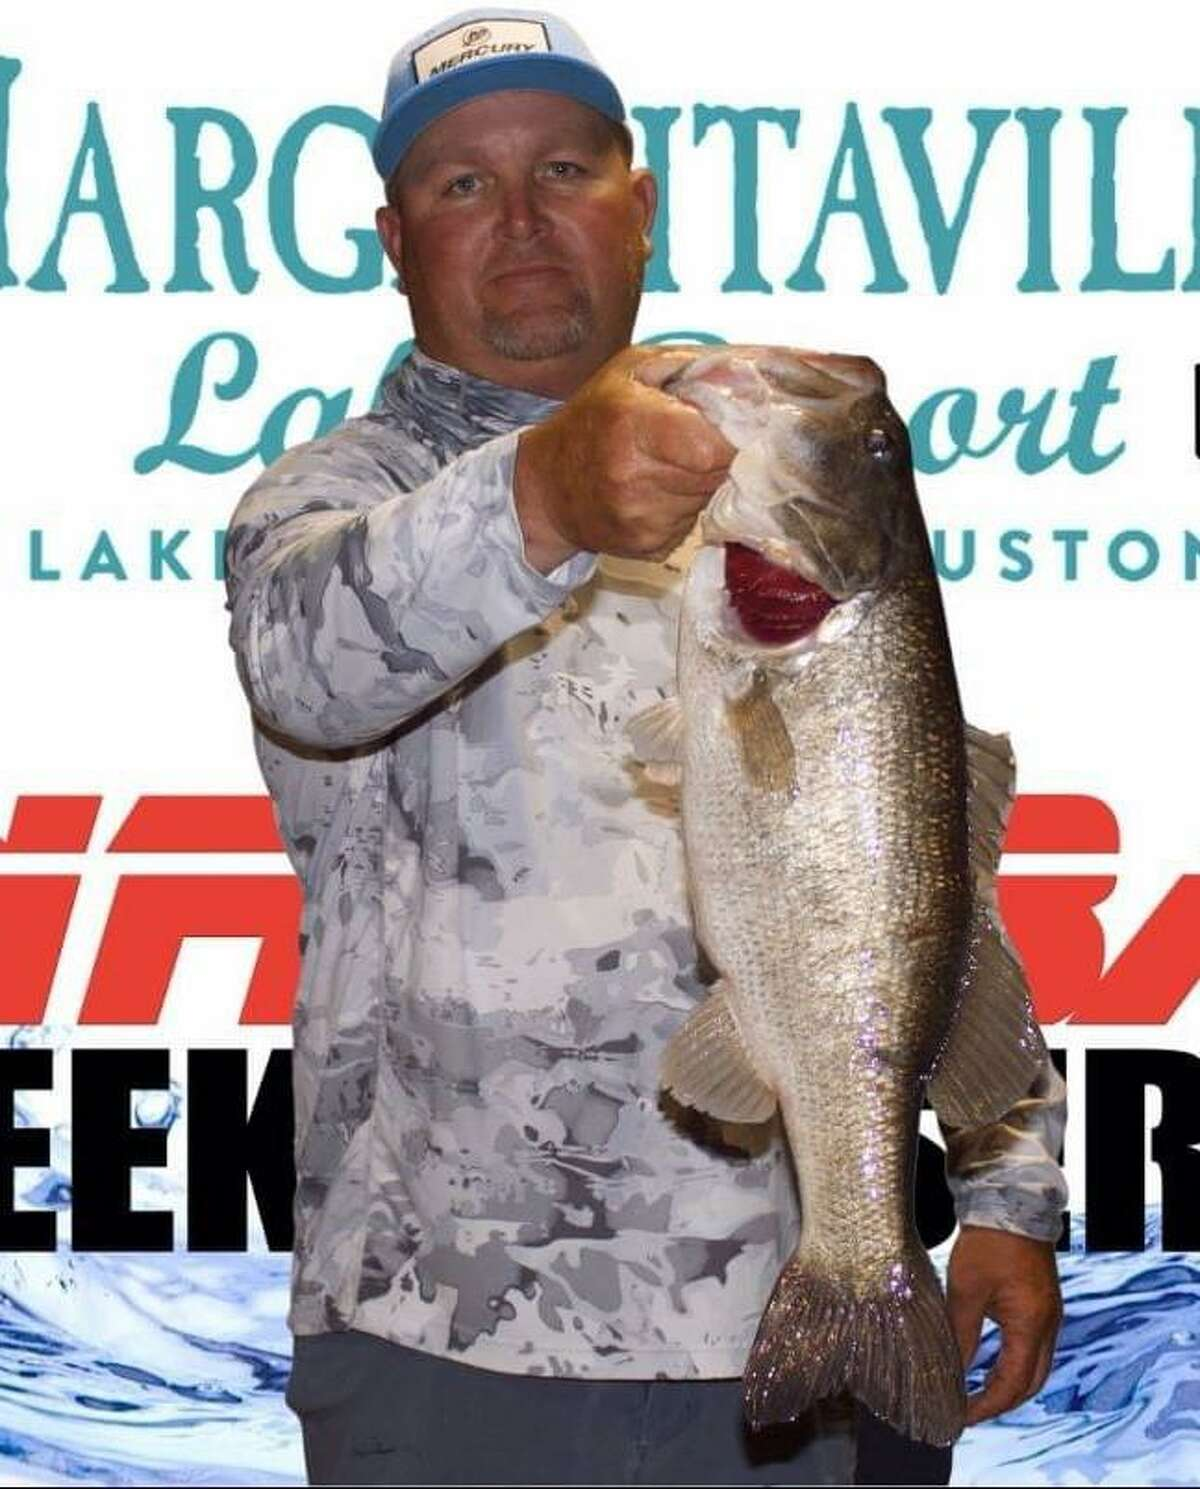 Tommy Baker came in second place in the CONROEBASS Thursday Big Bass Tournament with a weight of 6.68 pounds.